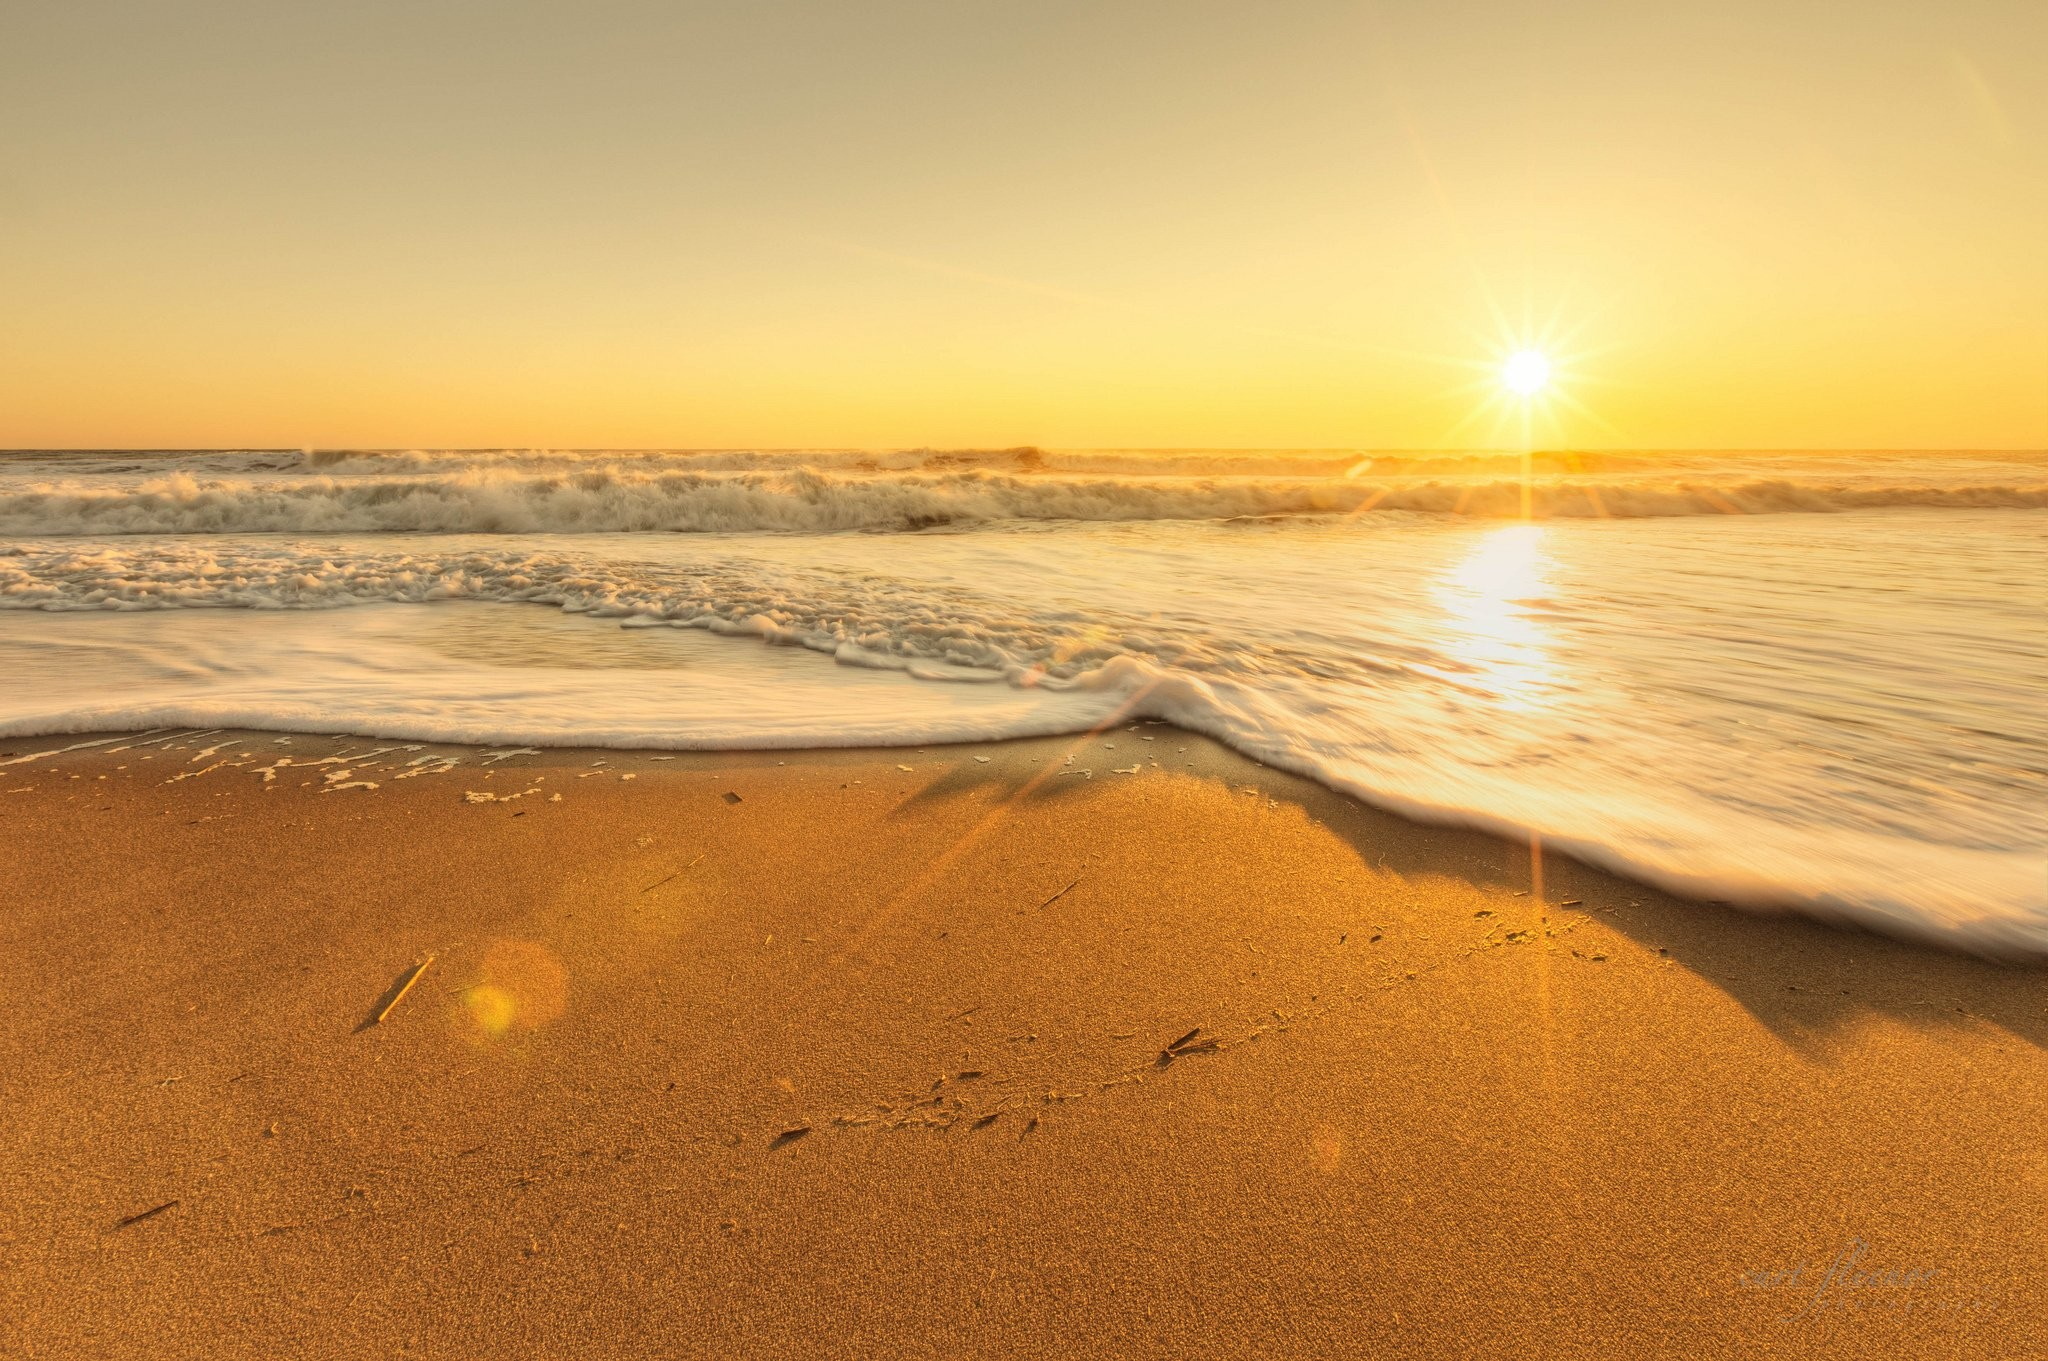 2048x1361 PreviousNext. Previous Image Next Image. beach sunset scenery wallpaper ...